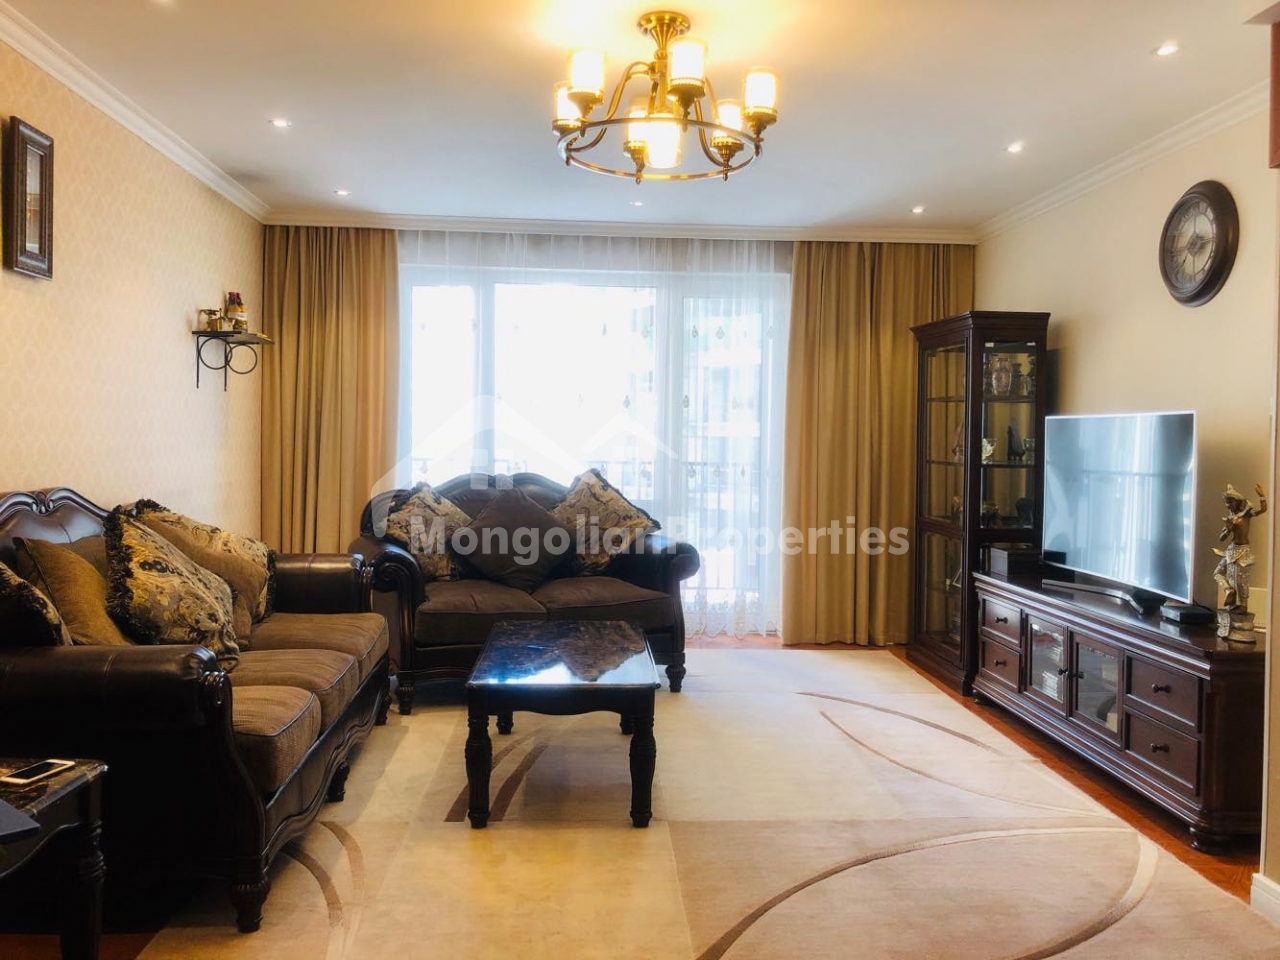 Spacious 2 bedroom apartment is for sale at Encanto town